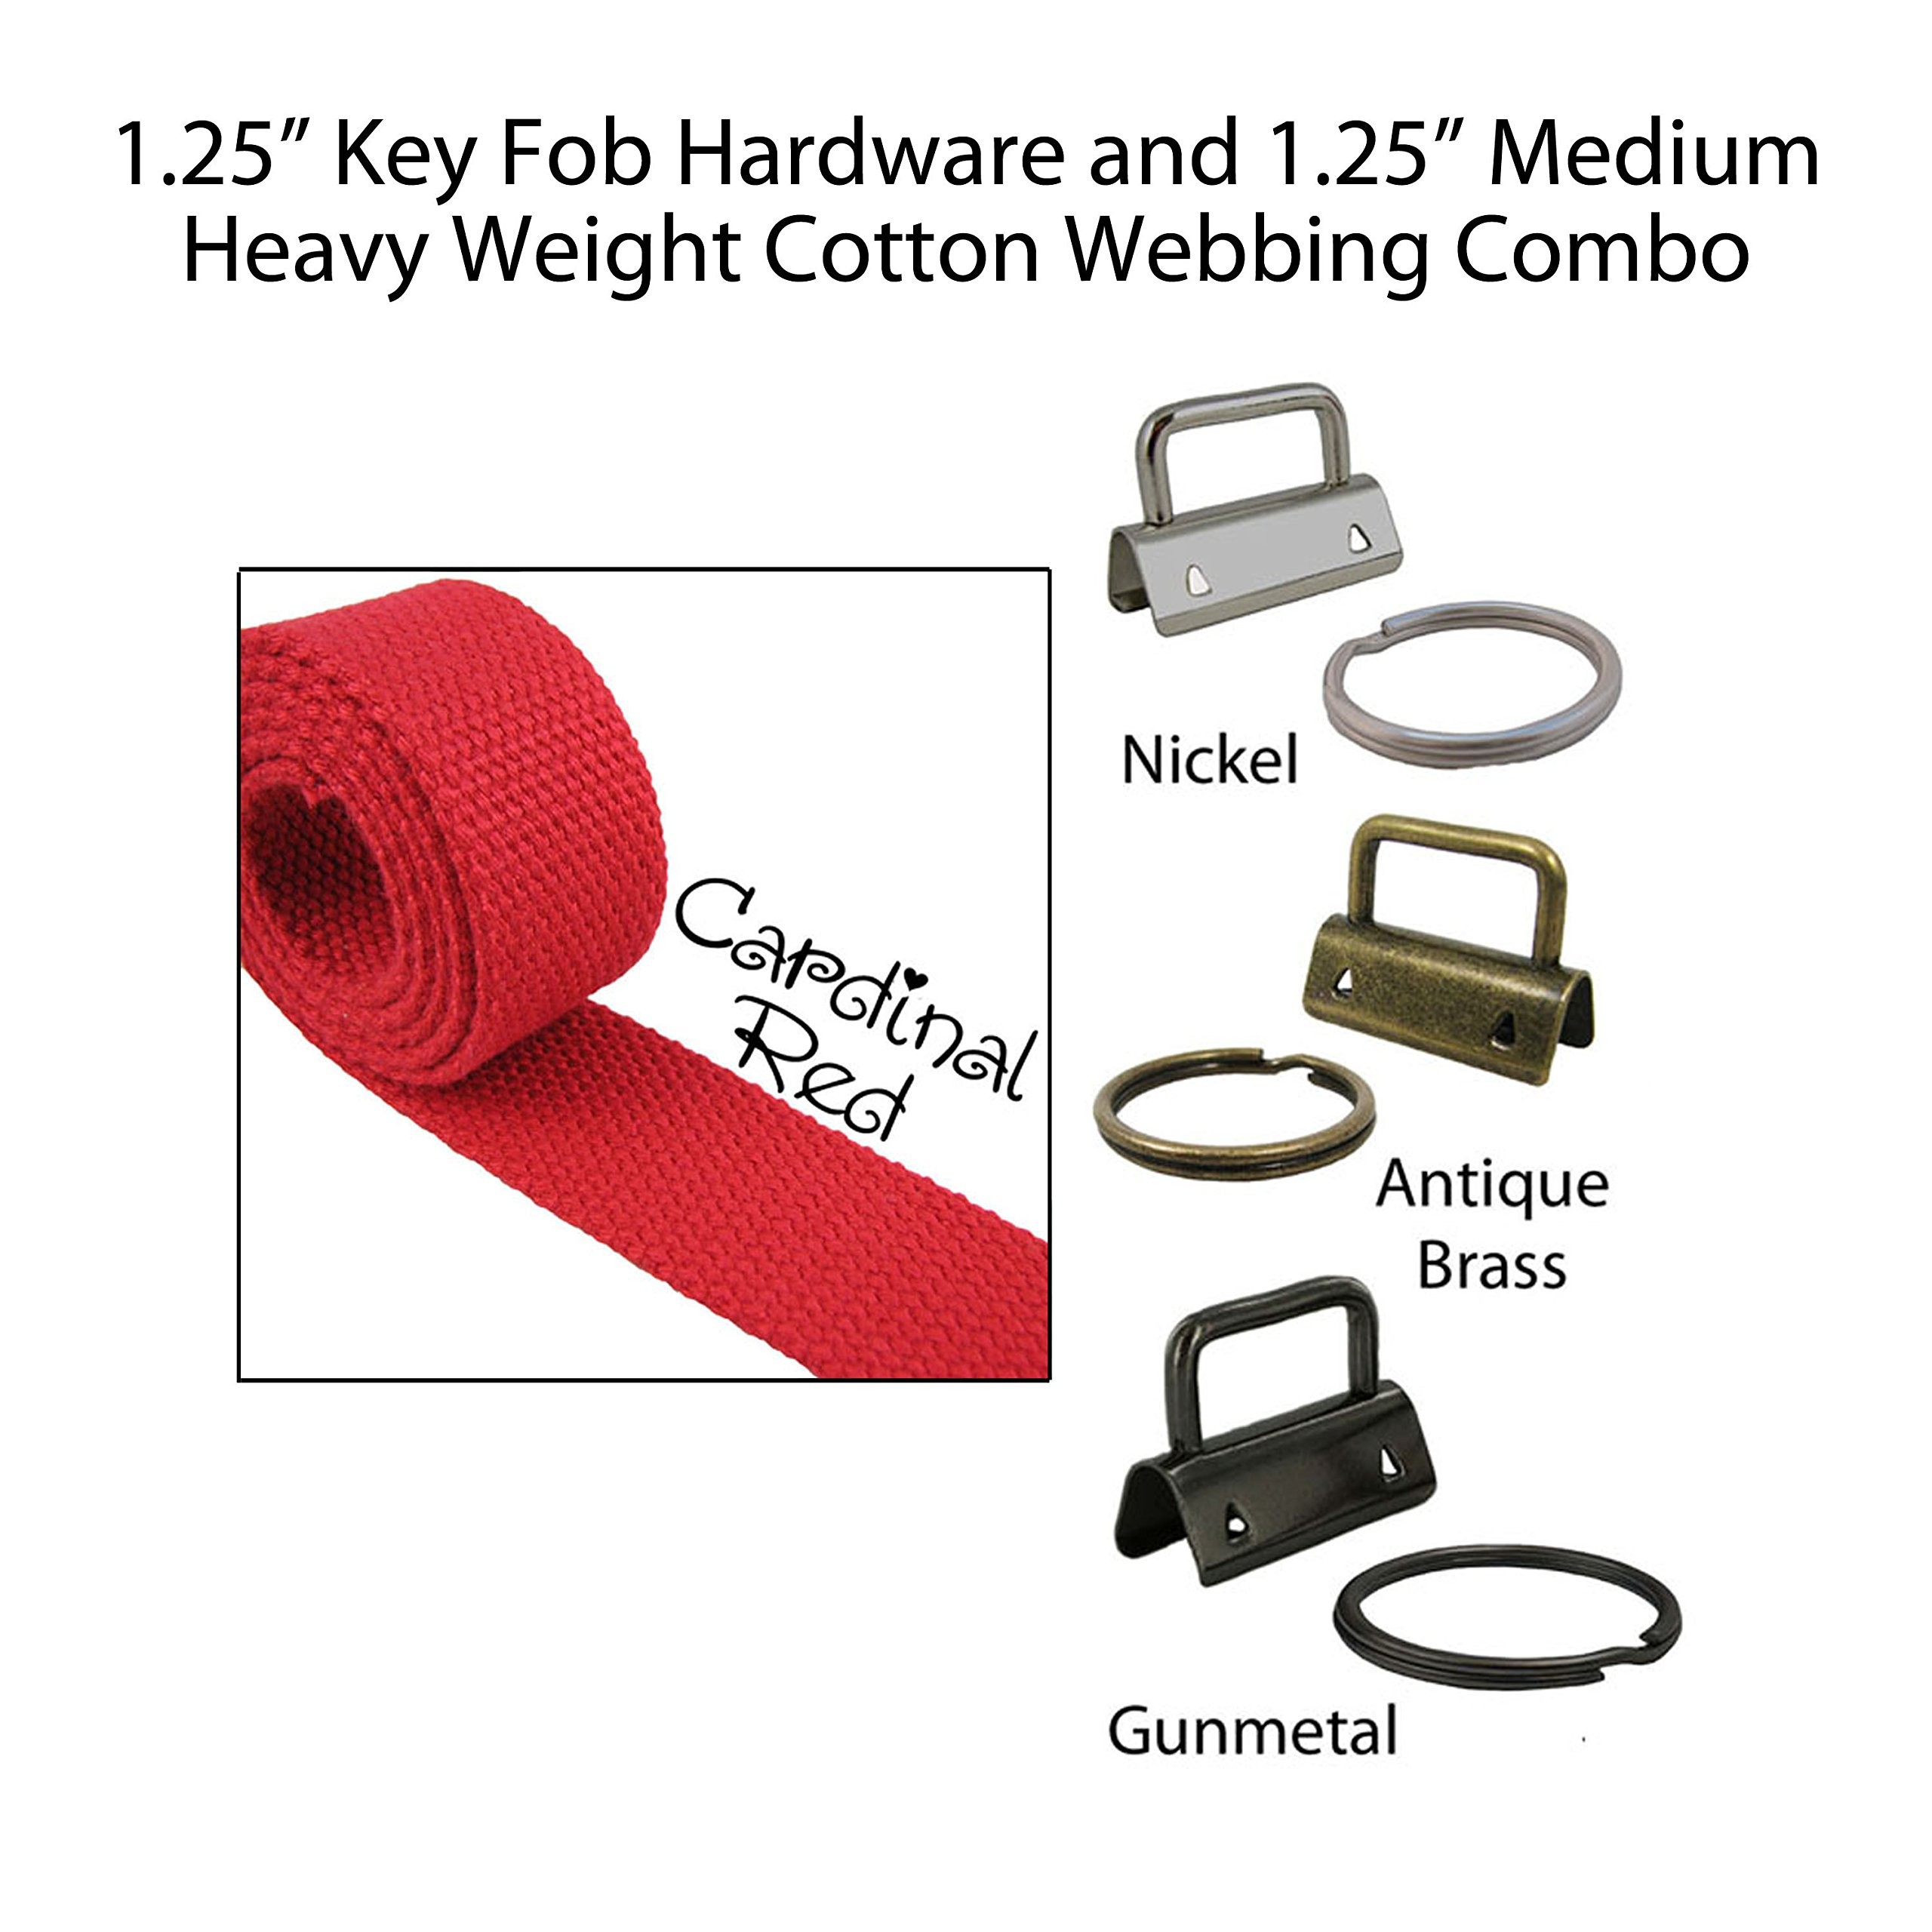 """1.25"""" Key Fob Hardware and 1.25"""" Cotton Webbing Combo - Cardinal Red"""